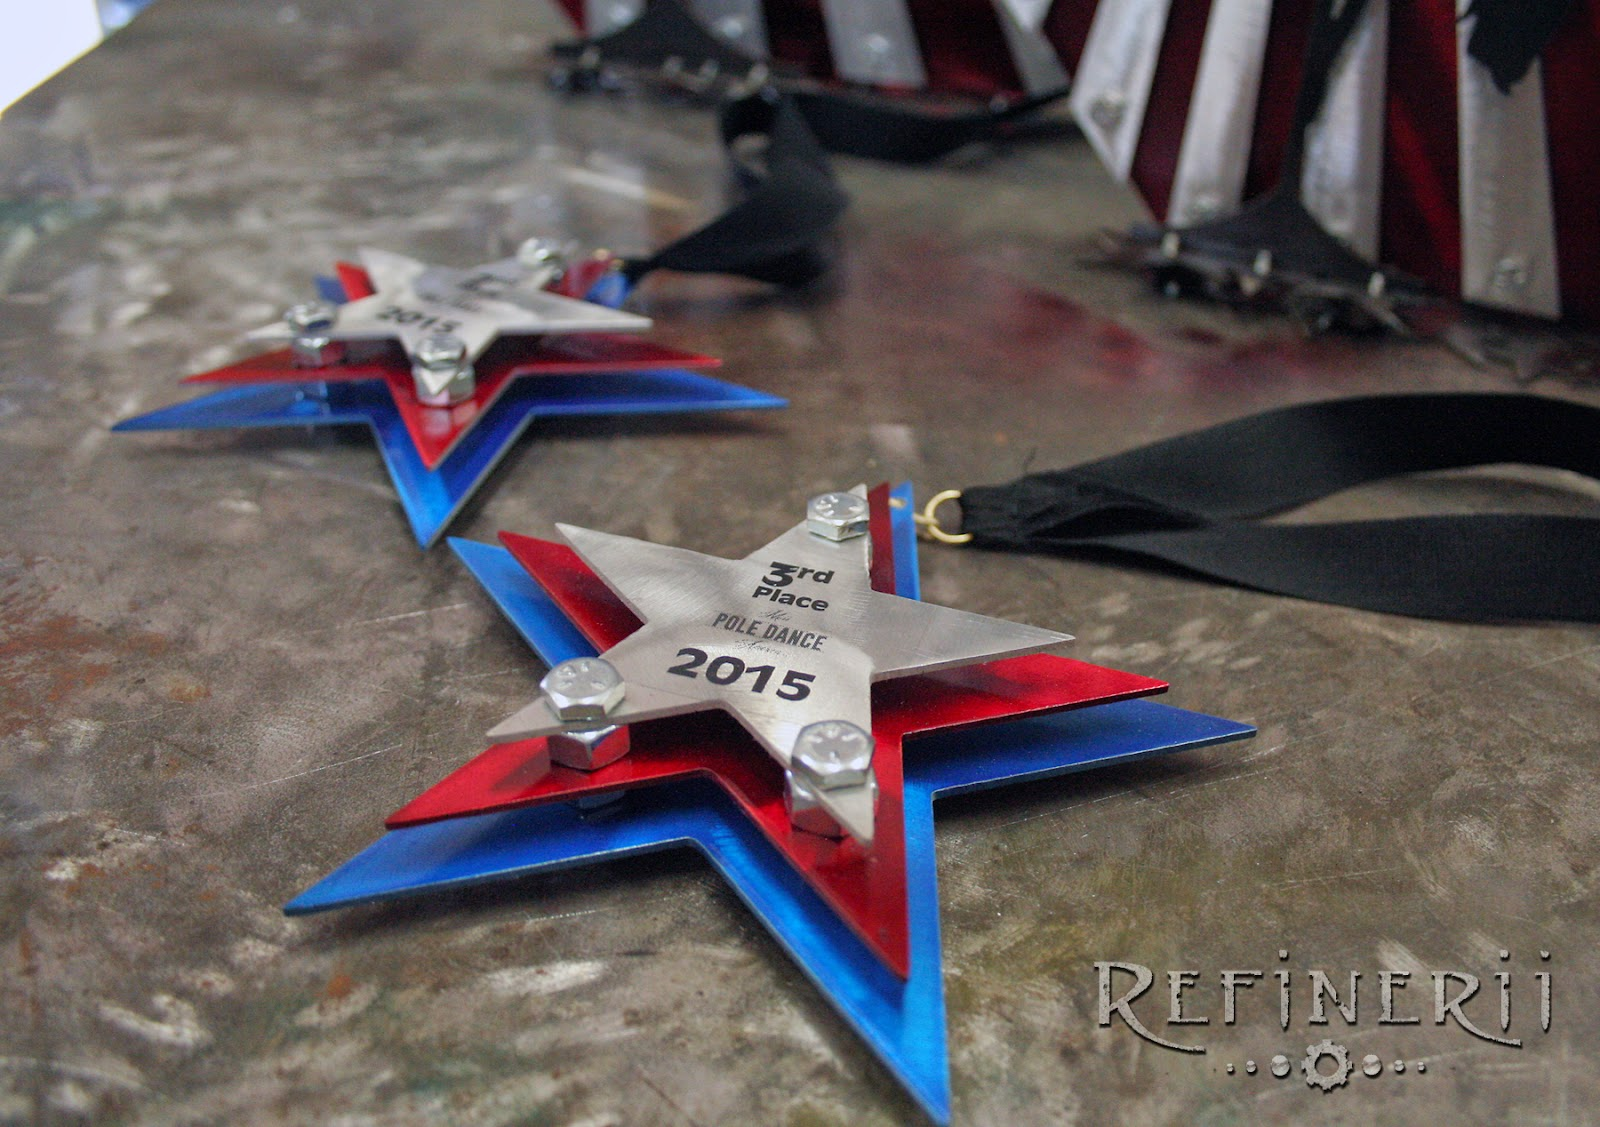 custom medals made for Miss Pole Dance America 2015 by refinerii.net